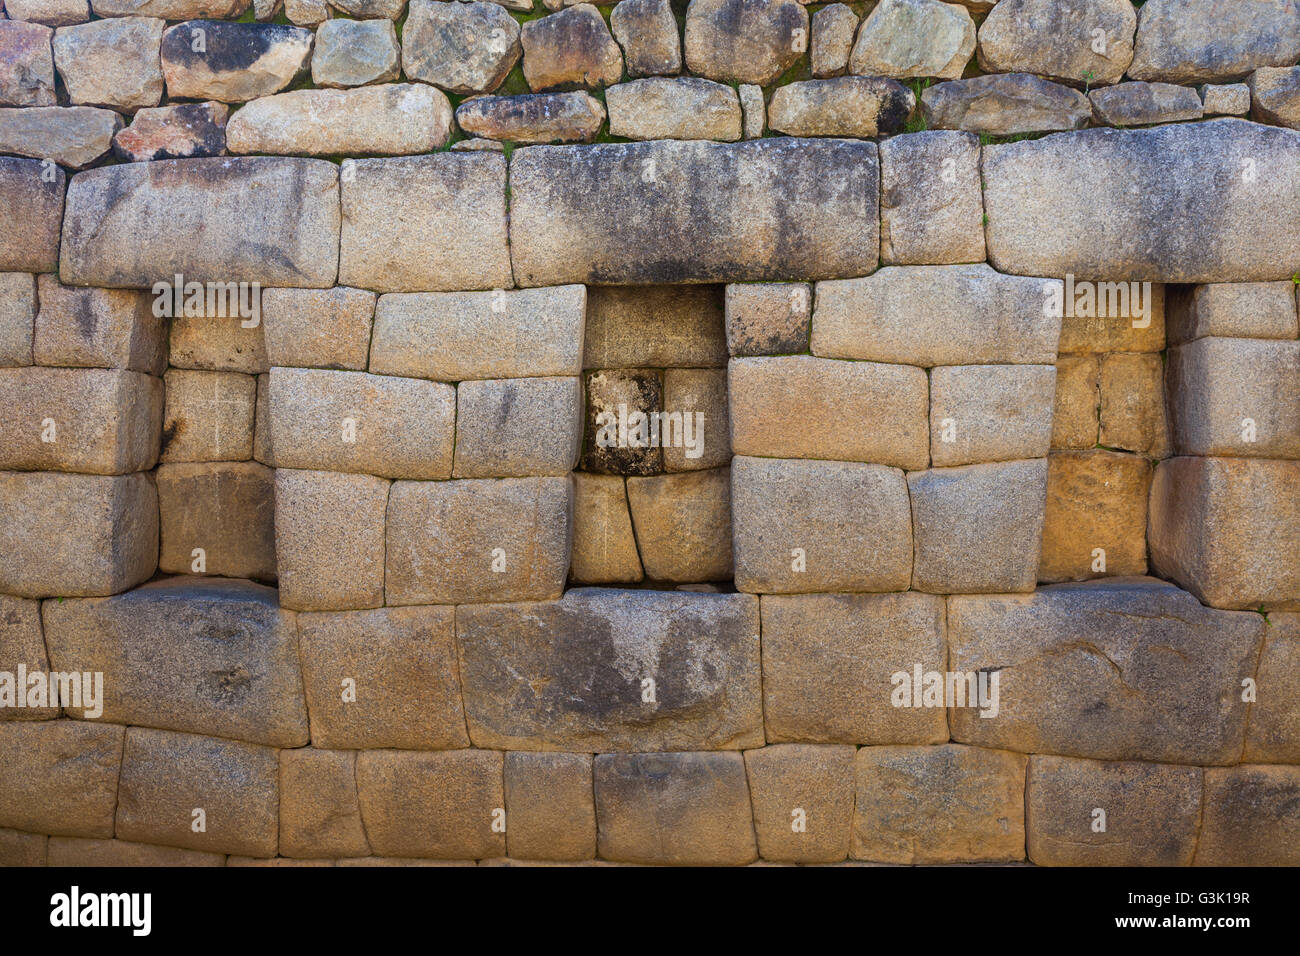 Trapezoidal openings in an internal wall for storage or decor at Machu Picchu, Peru - Stock Image